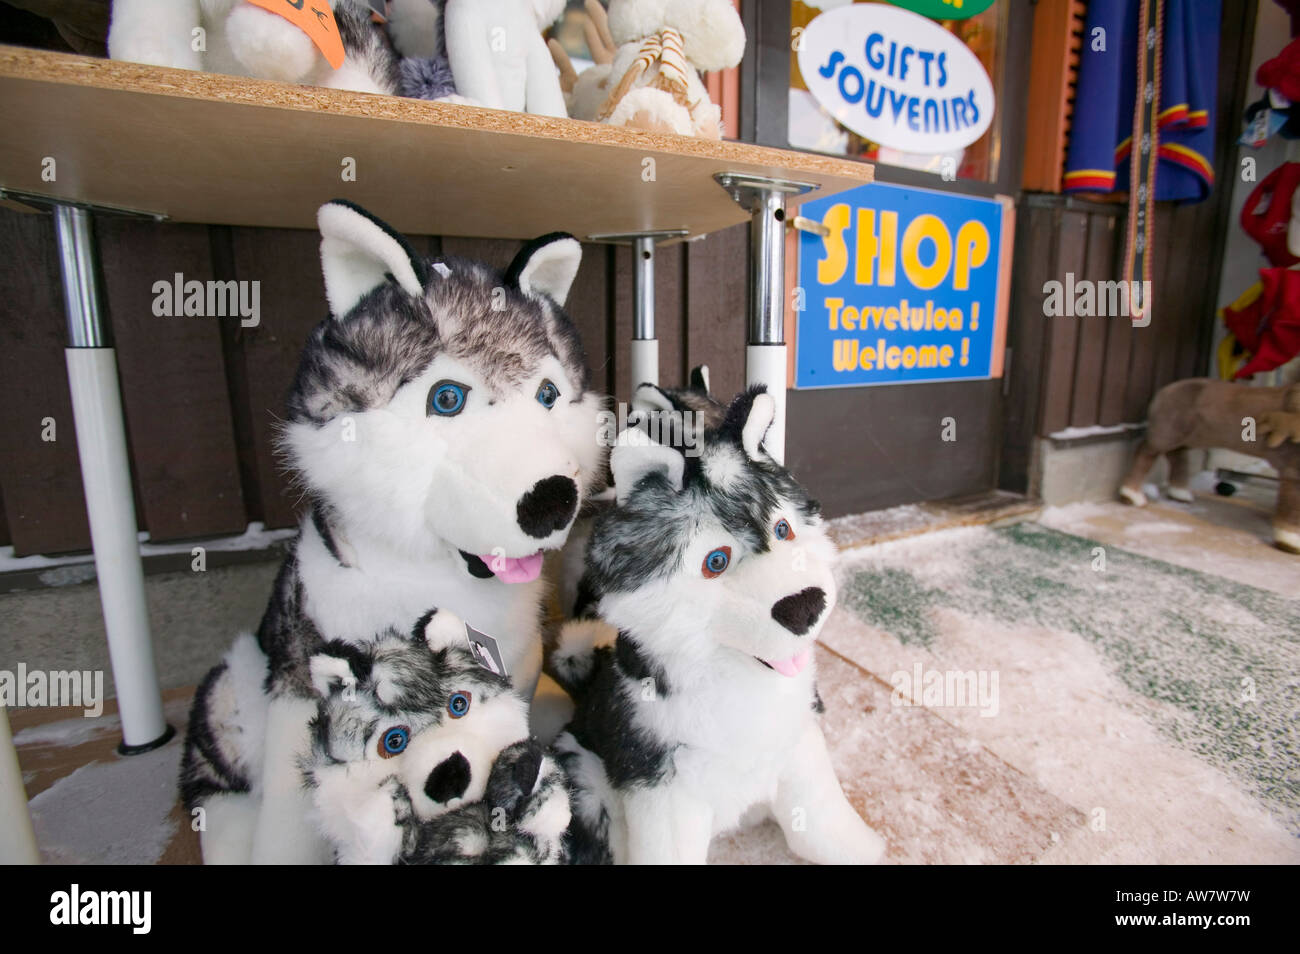 An Shop Selling Cuddly Toy Husky Dogs In Saariselka Northern Finland Stock Photo Alamy